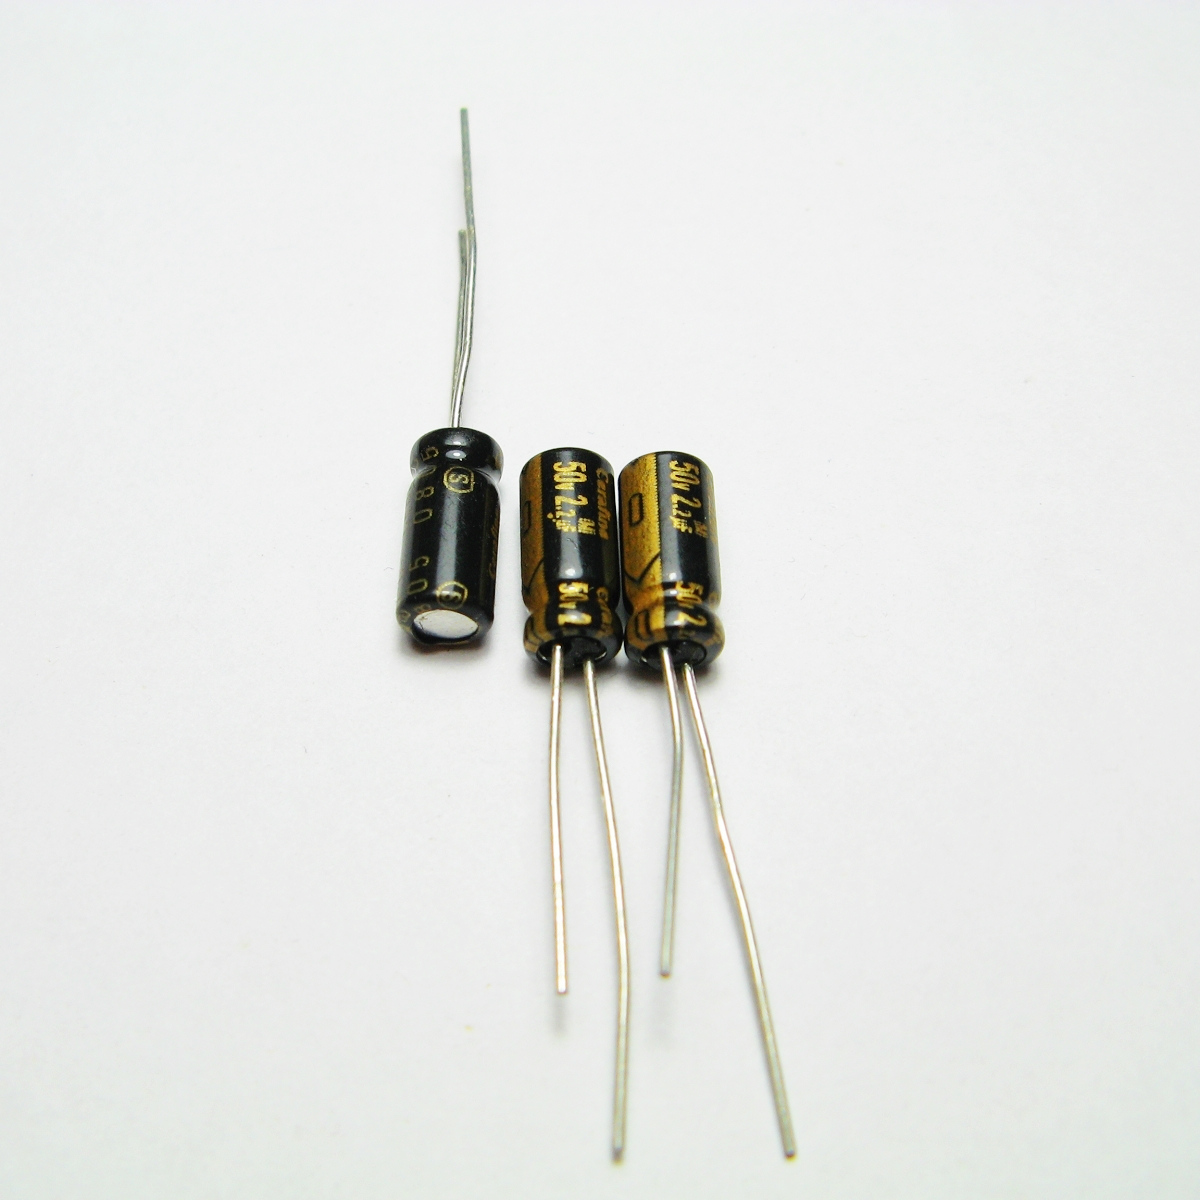 50V2.2uf aluminum electrolytic capacitor Audio Capacitors Electronic Components